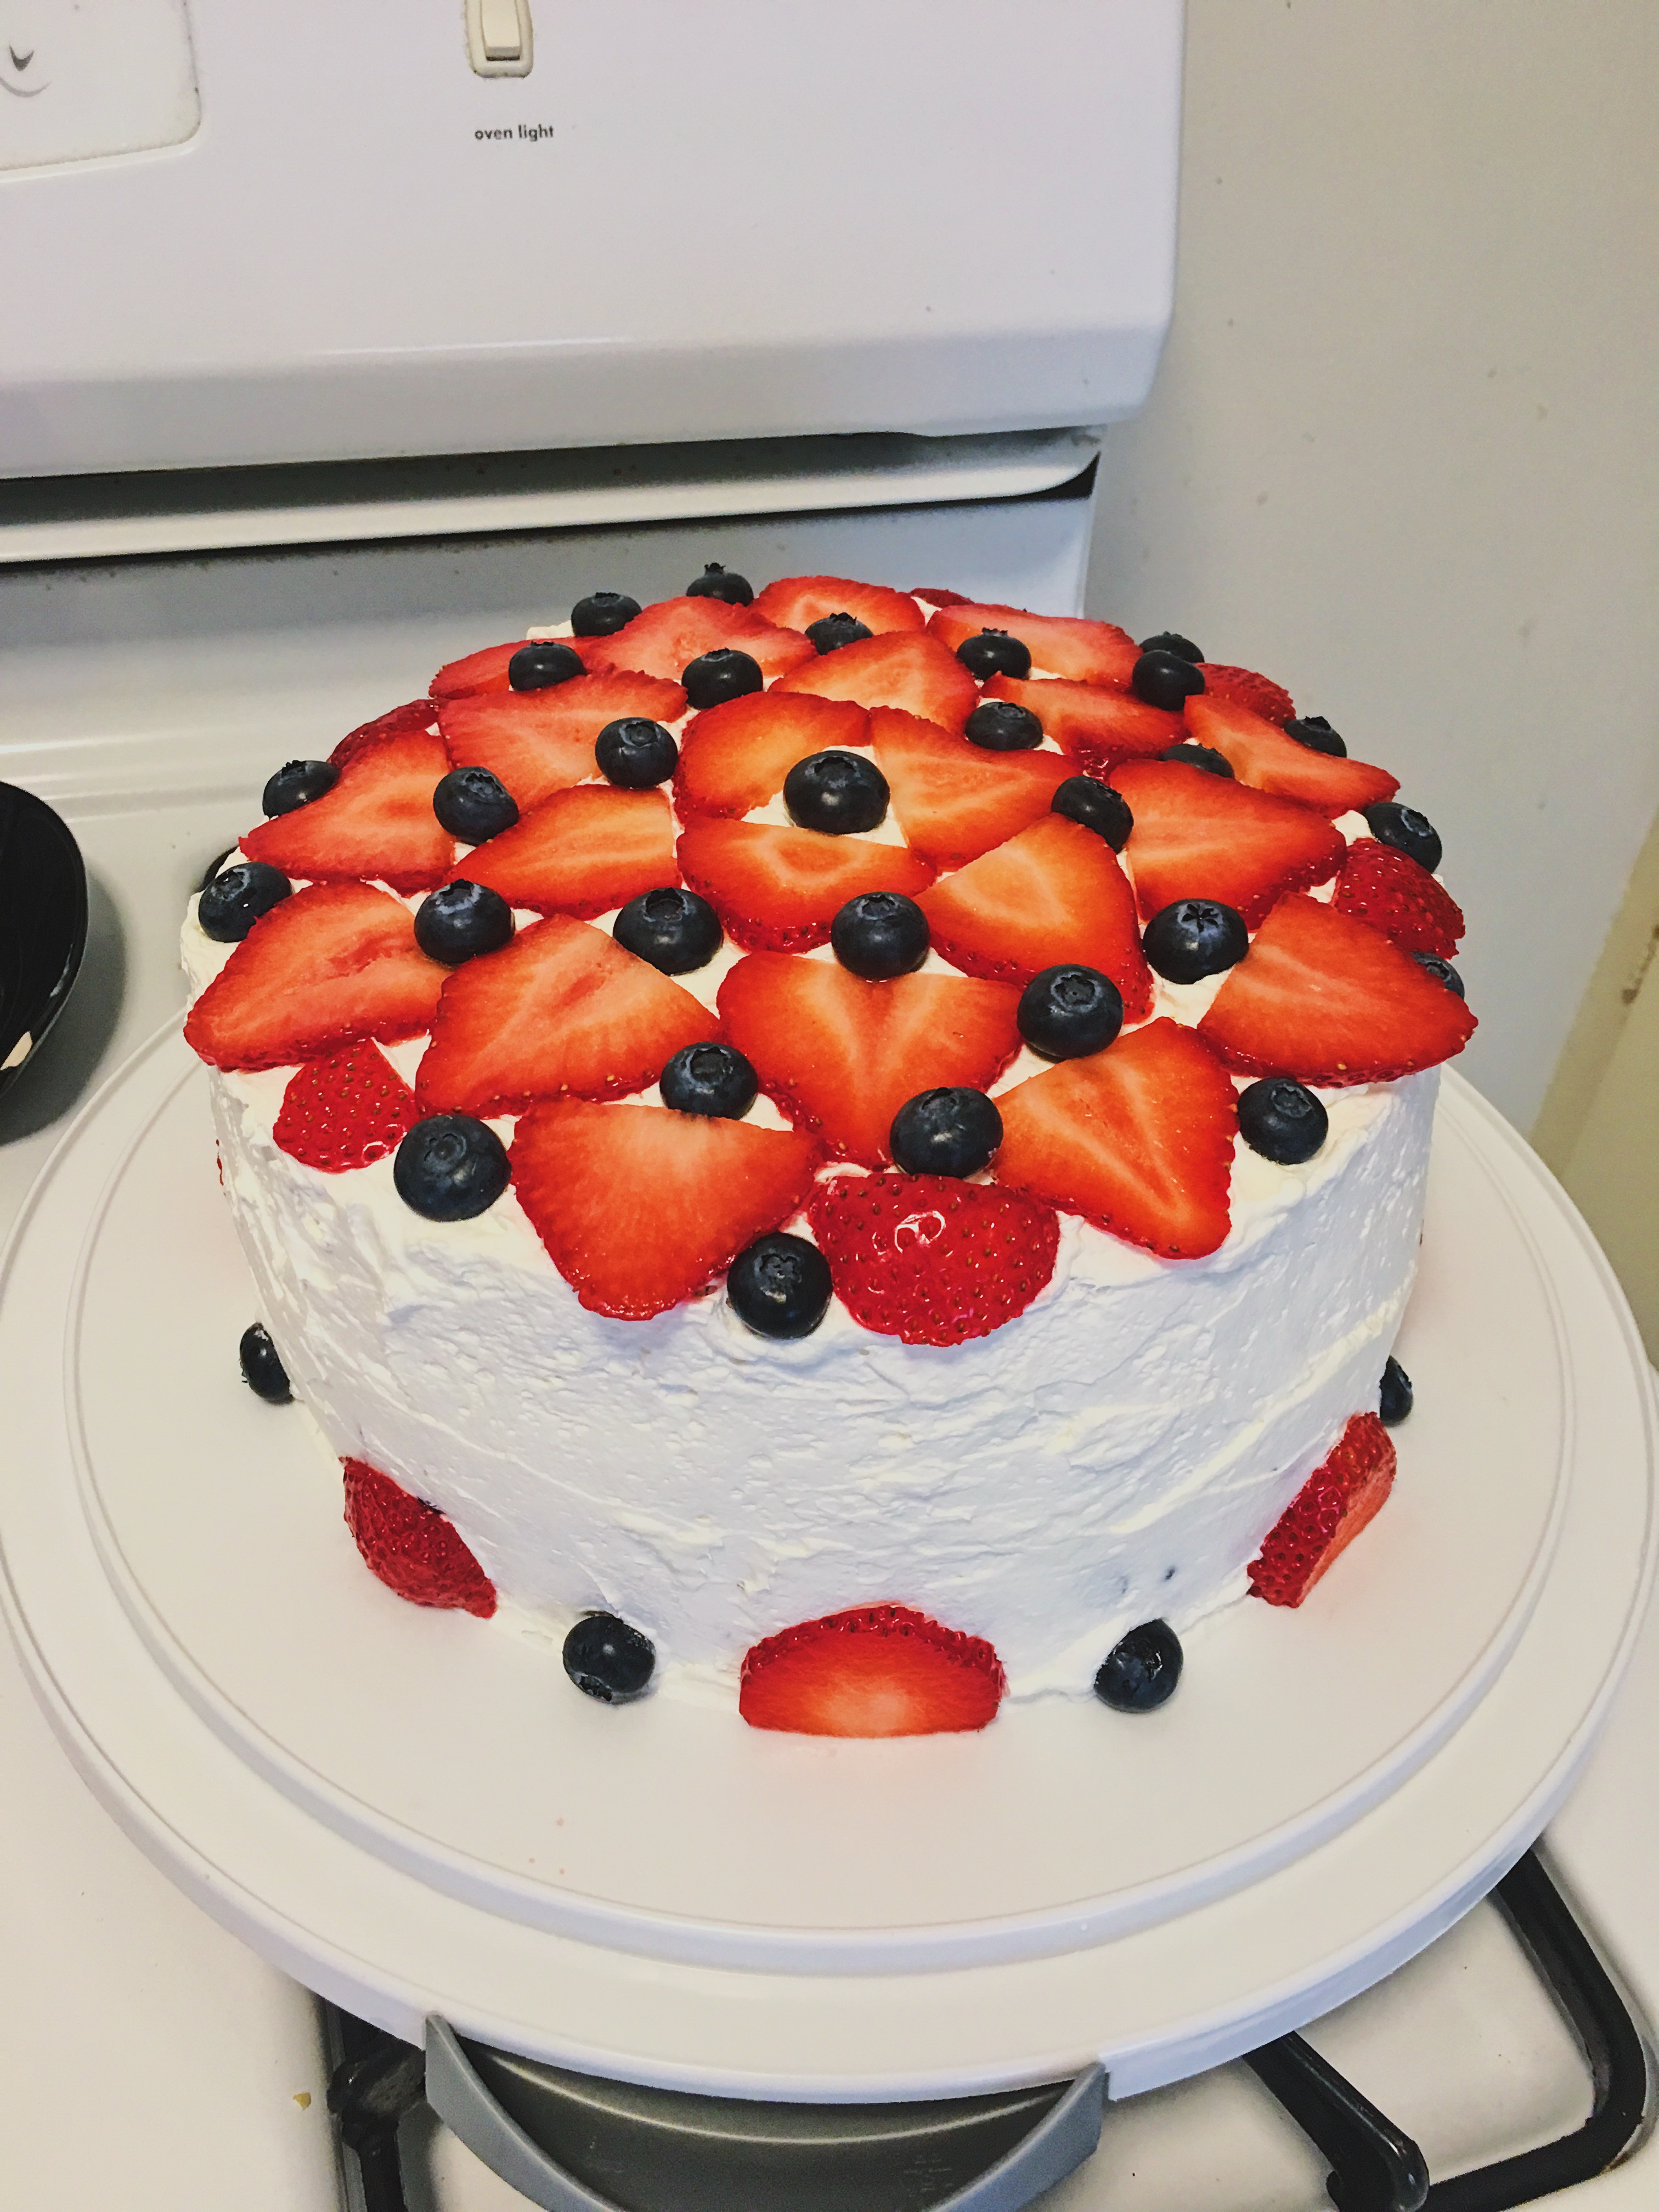 4th of july red white and blue cake with strawberries and blueberries